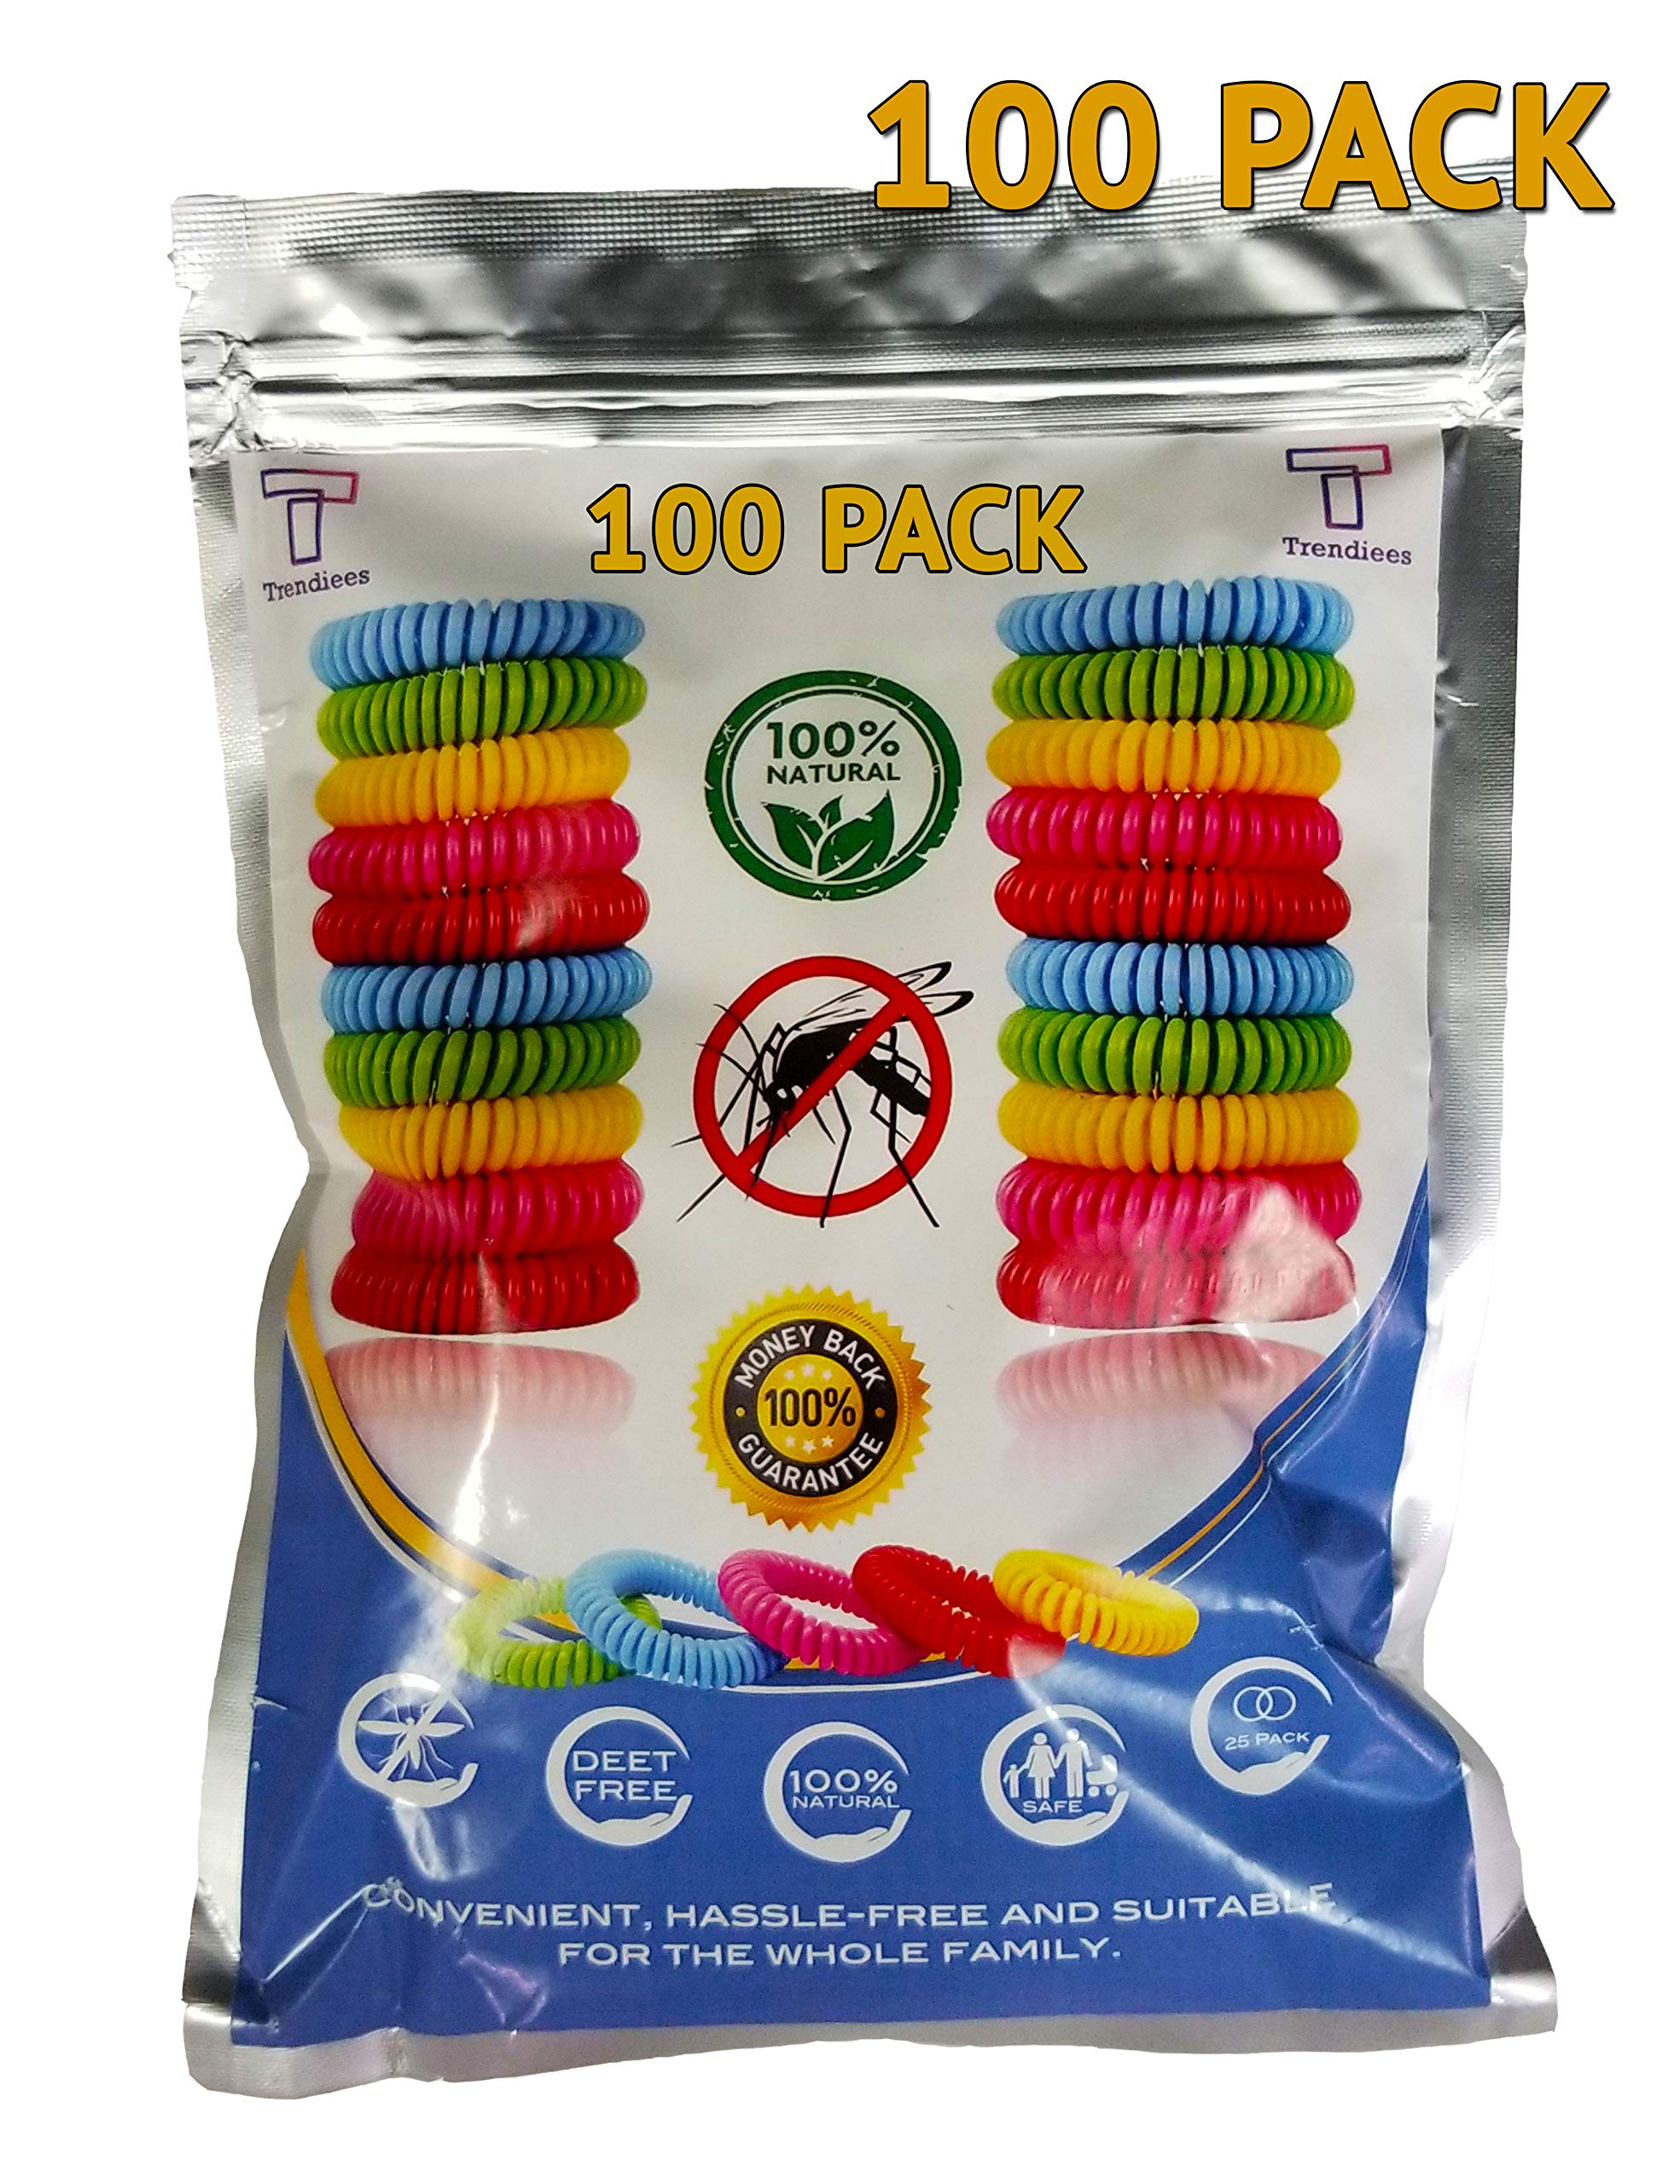 Mosquito Repellent Bracelet Bug Bands for Kids, Adults & Pets - Easy & Comfortable Citronella Anti Pest Protection - No More Bug Spray! + 6 Free Repellent Patches, Waterproof, 100% Natural (100 Pack) by Bierstick